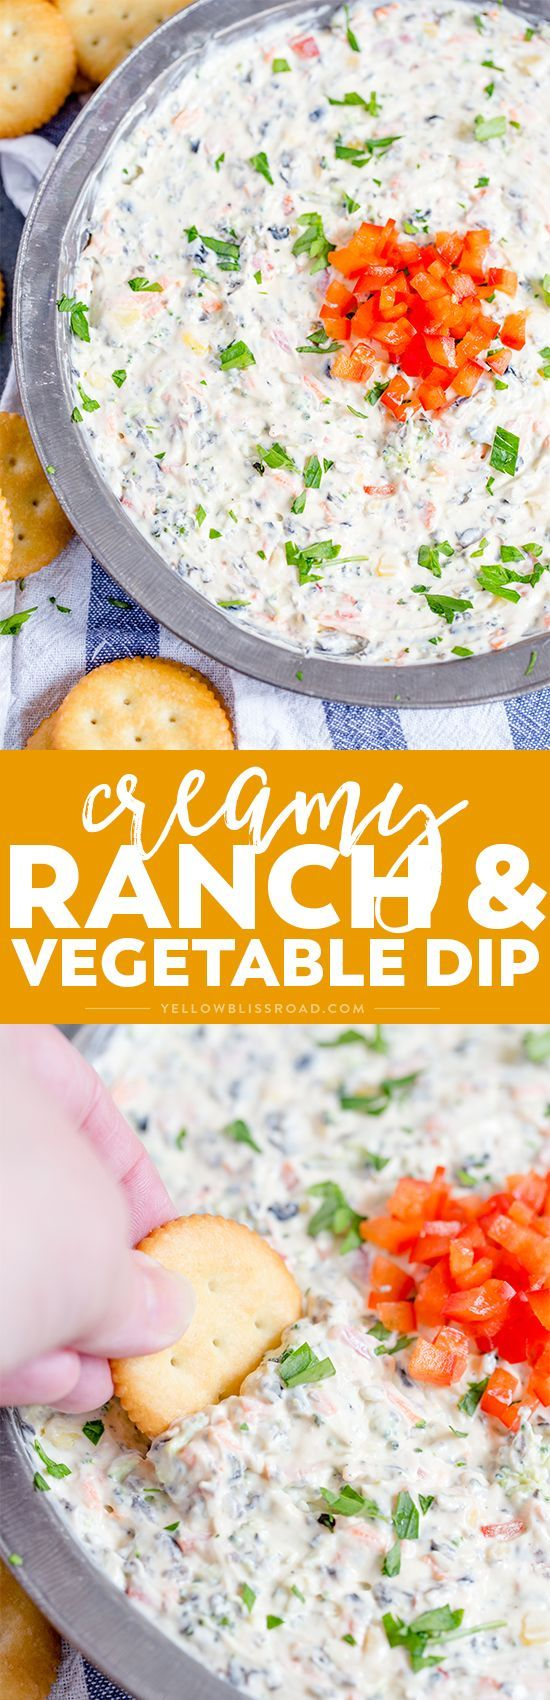 Creamy Ranch and Vegetable Dip is full of your favorite veggies and loaded with Ranch flavor. Great with crackers or chips, it's your new favorite summer snack!